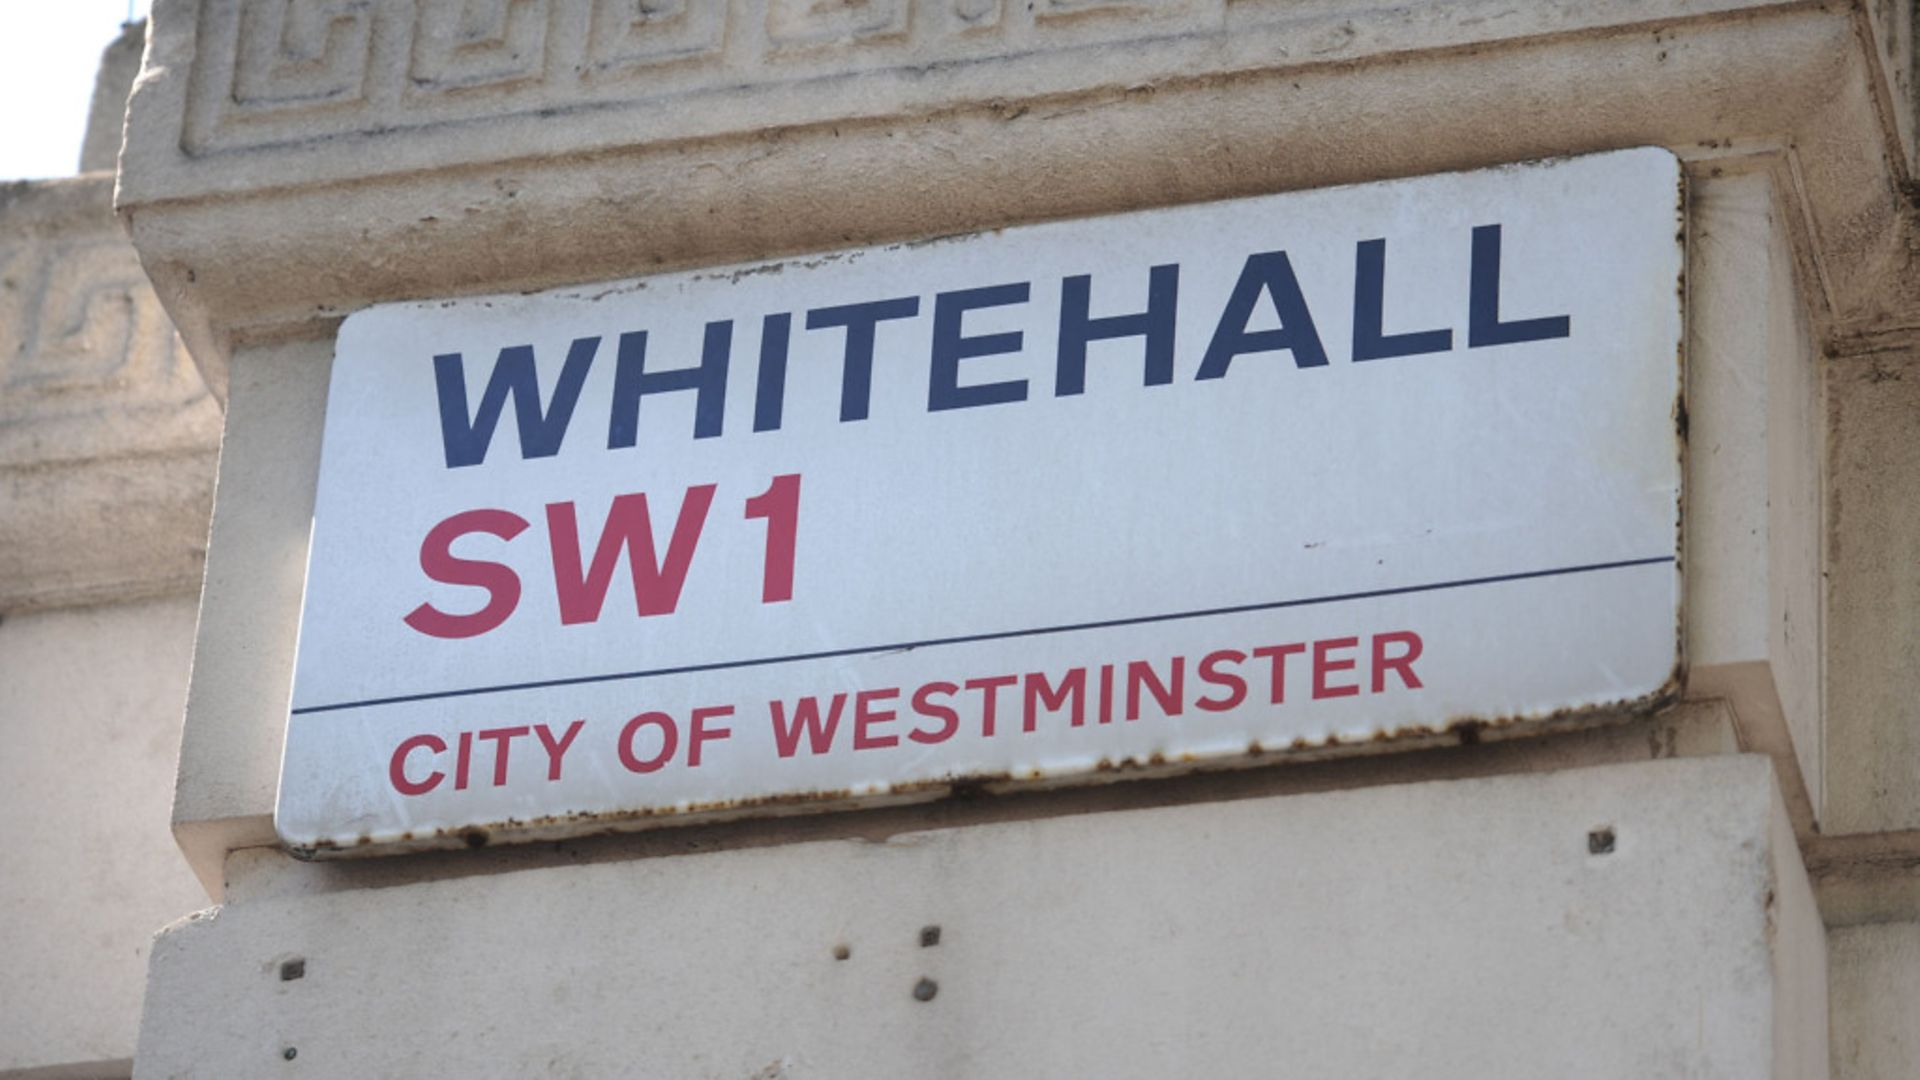 Whitehall street sign - Credit: PA Wire/PA Images